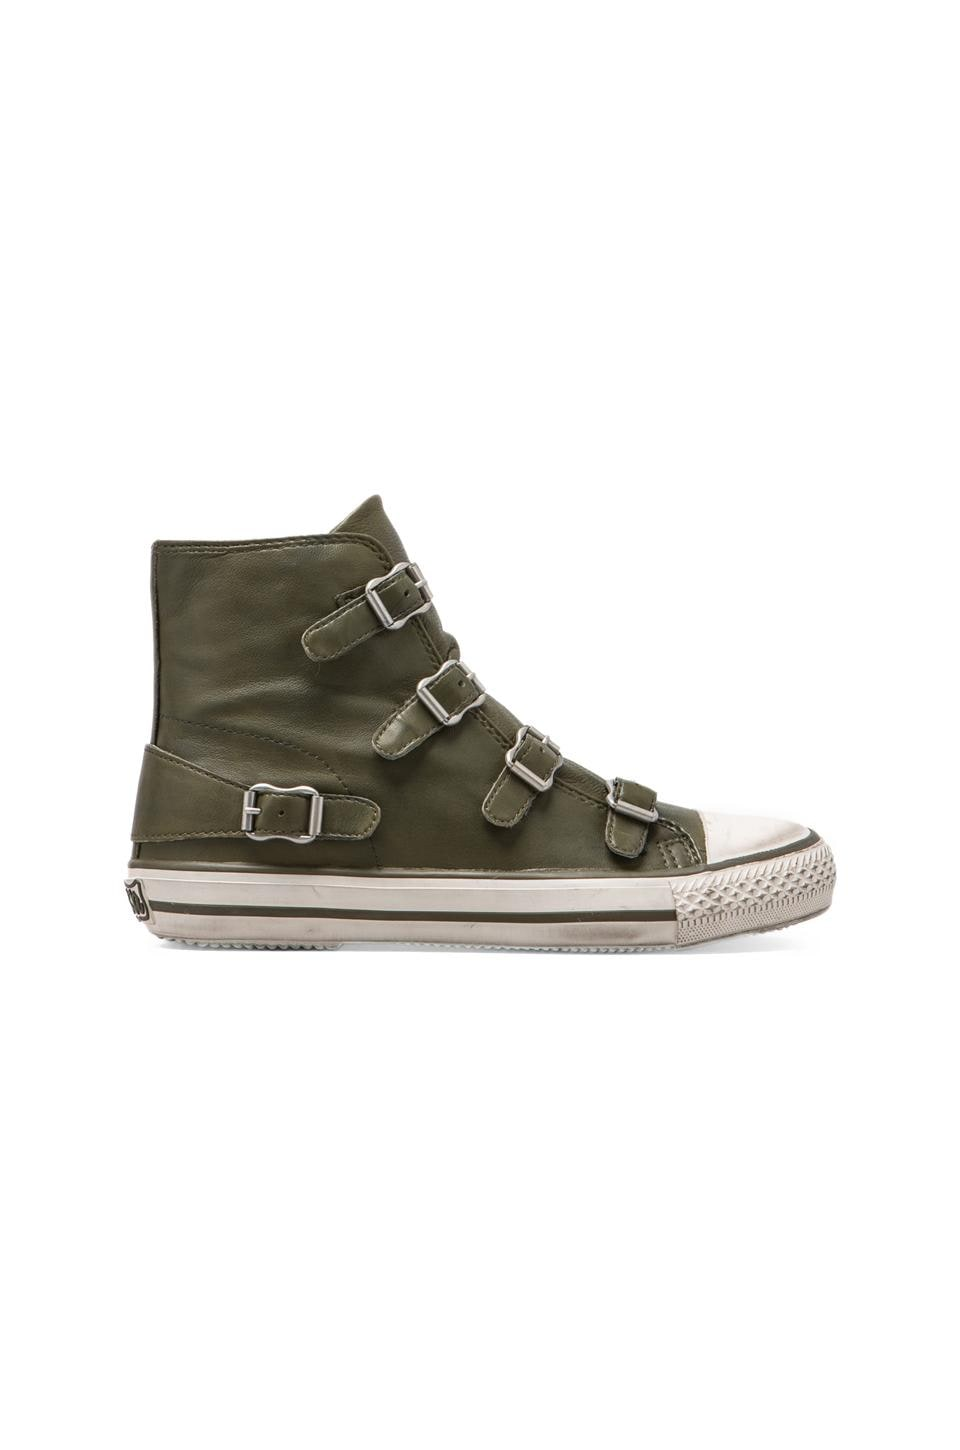 Ash Virgin Sneaker in Military